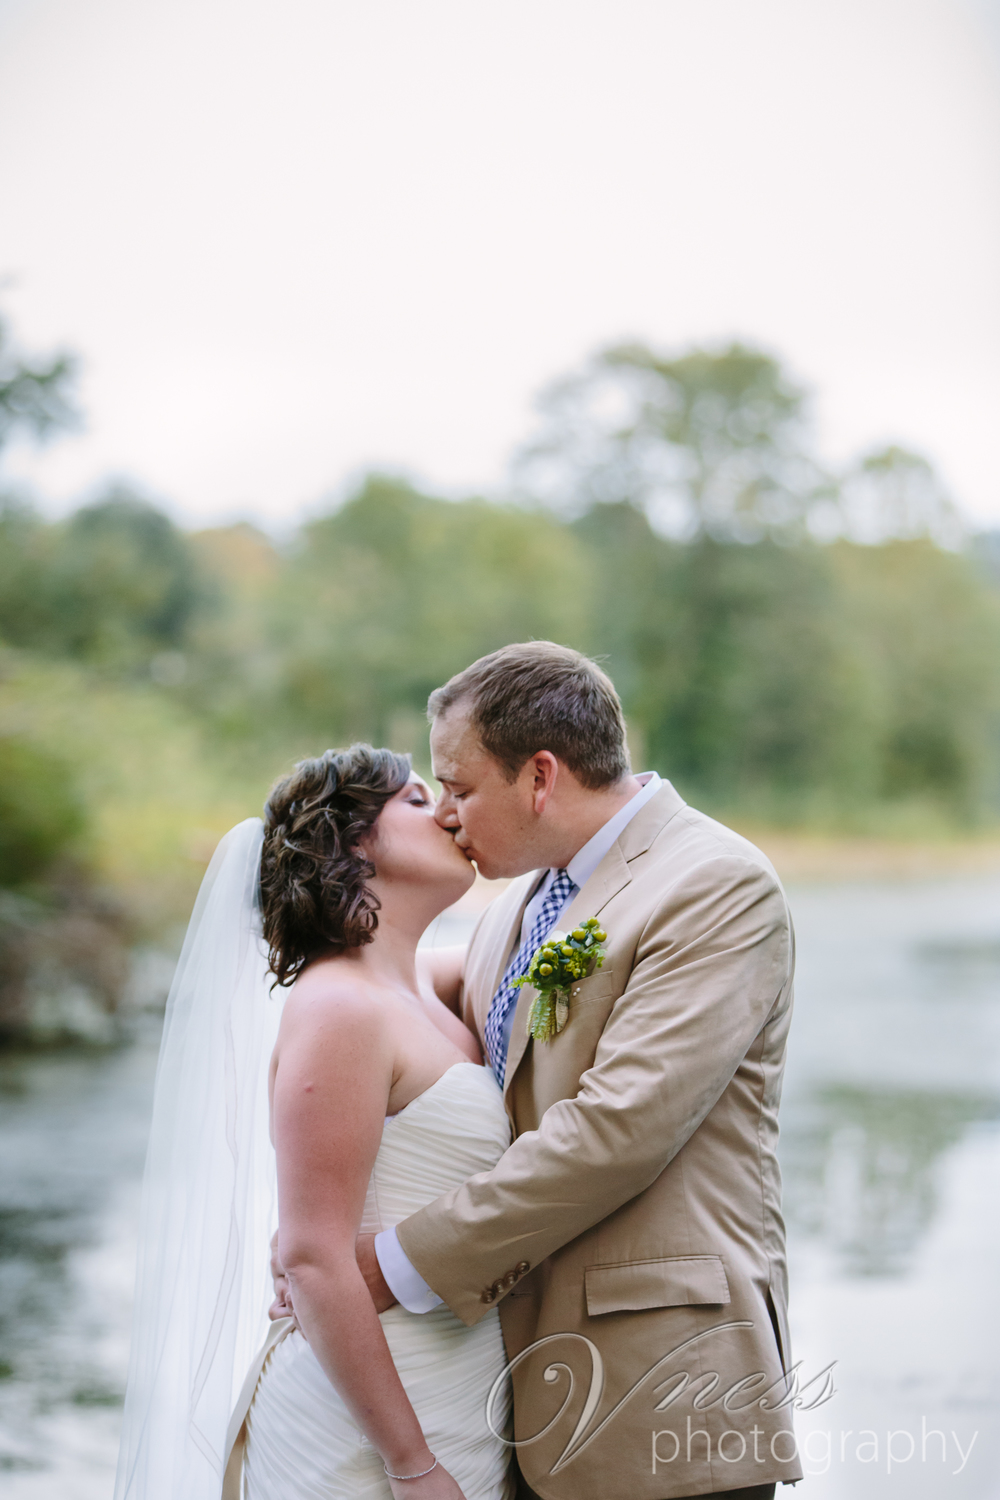 Vnessphotography_Cameron Wedding-140.jpg